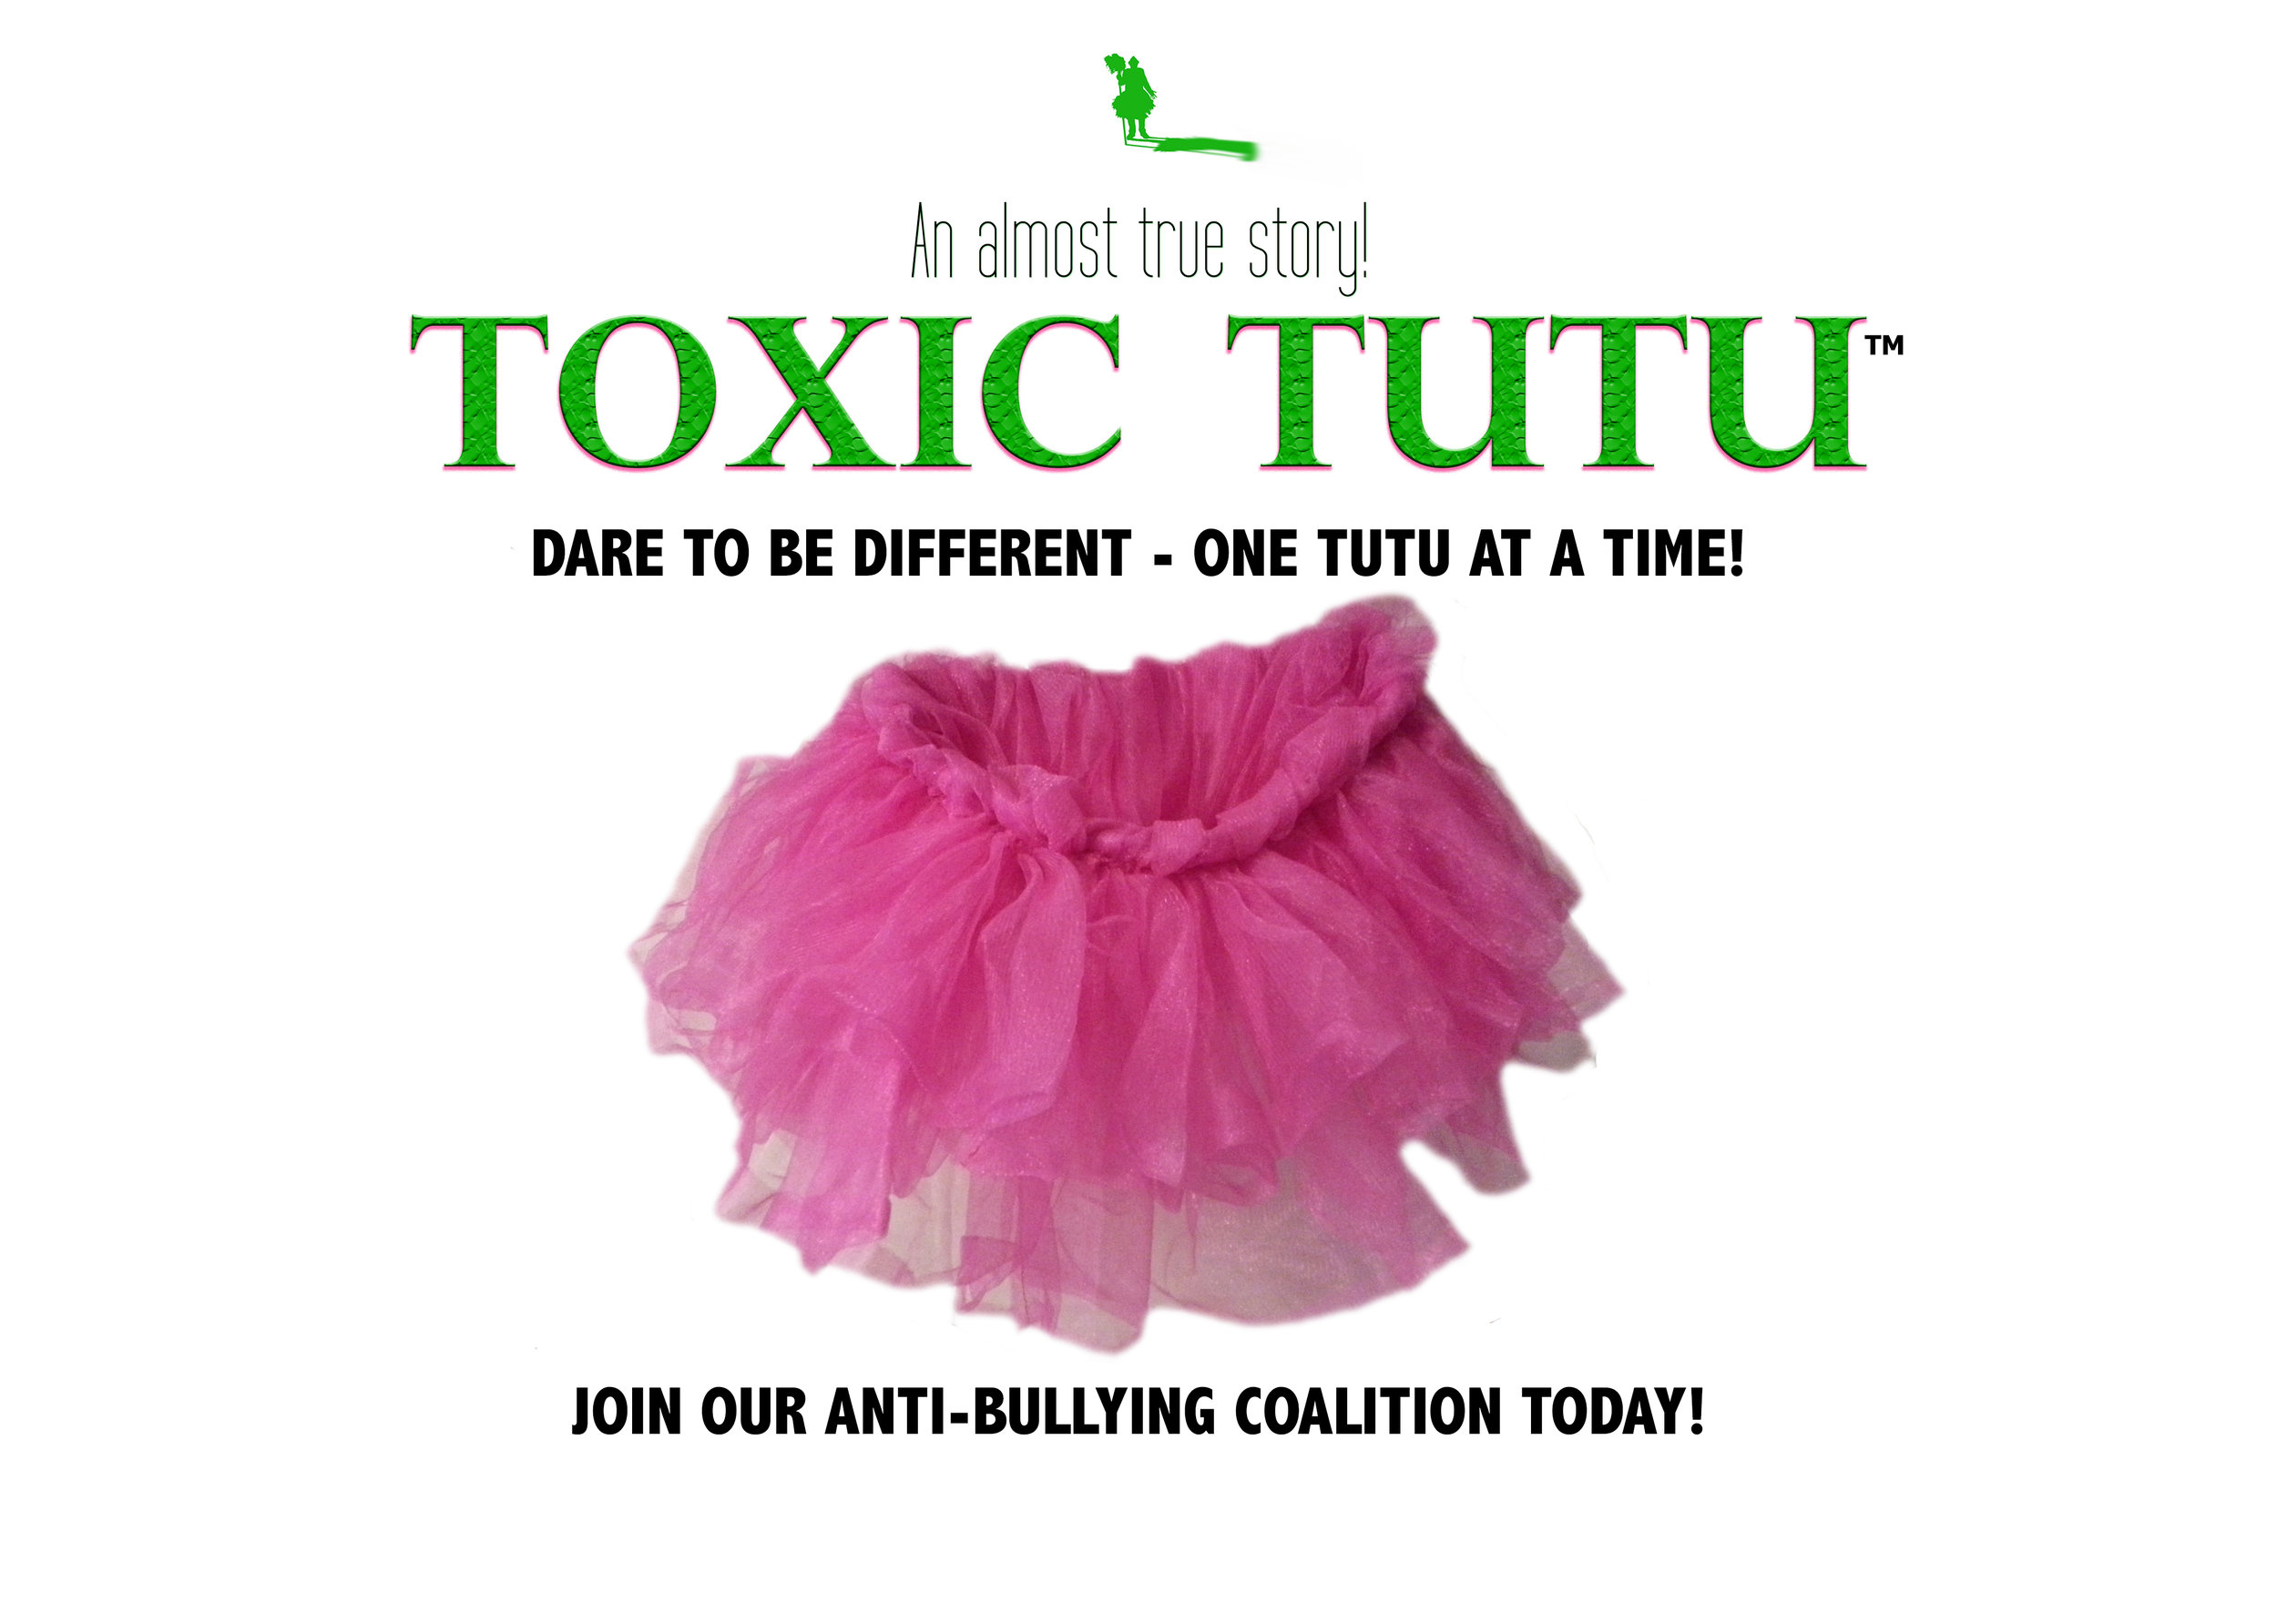 Thanks for taking the time to read about our ABC's!    We hope you will BRING TOXIC TUTU TO YOUR COLLEGE CAMPUS.And of course, spread word about our coalition to everyone you know!    PILLARS for PEACEFUL COMMUNICATION   • Understanding what you are feeling. Having the ability to convey how you are feeling by using empathic language that helps you communicate those feelings. Marshall Rosenberg's Center for Non-Violent Communications offers a free feelings and needs inventory. You can find it at: https://www.cnvc.org/Training/needs-inventory  • Understanding your unfulfilled needs. Having the ability to express your needs not being met with clarity. Needs that are directly related to uncomfortable feelings you are experiencing when in conversations with others. My rule is empathy over ego!  • Learn to give pause. Before you say something to someone (factual based content excluded), ask yourself - does this need to be said?  • Engage the conscious practice of removing all blame and judgement from your comments. While being open to receive others and what they have to share with us empathy, patience and kindness are key components in peaceful communication.  • • •   If the TOXIC TUTU trailer compels you to want to see the film we hope our Anti Bullying Coalition will encourage you to join us in our effort to reach students and BIAS Response Teams on college campuses in the US and around the world.  You will begin to hear more about ABC when we are on our promotional tour with  An Almost True Story : TOXIC TUTU, as an extension of our movie's message and what we believe is a necessary responsibility we have as filmmakers.    ABC is an acronym for ANTI BULLYING COALITION and represents our initiative to build unity and awareness on college campuses by engaging student activity organizations, and social organizations like sororities and fraternities to help spread the word.    The idea we want to share with groups on college campuses is that a TUTU can be worn by anyone a